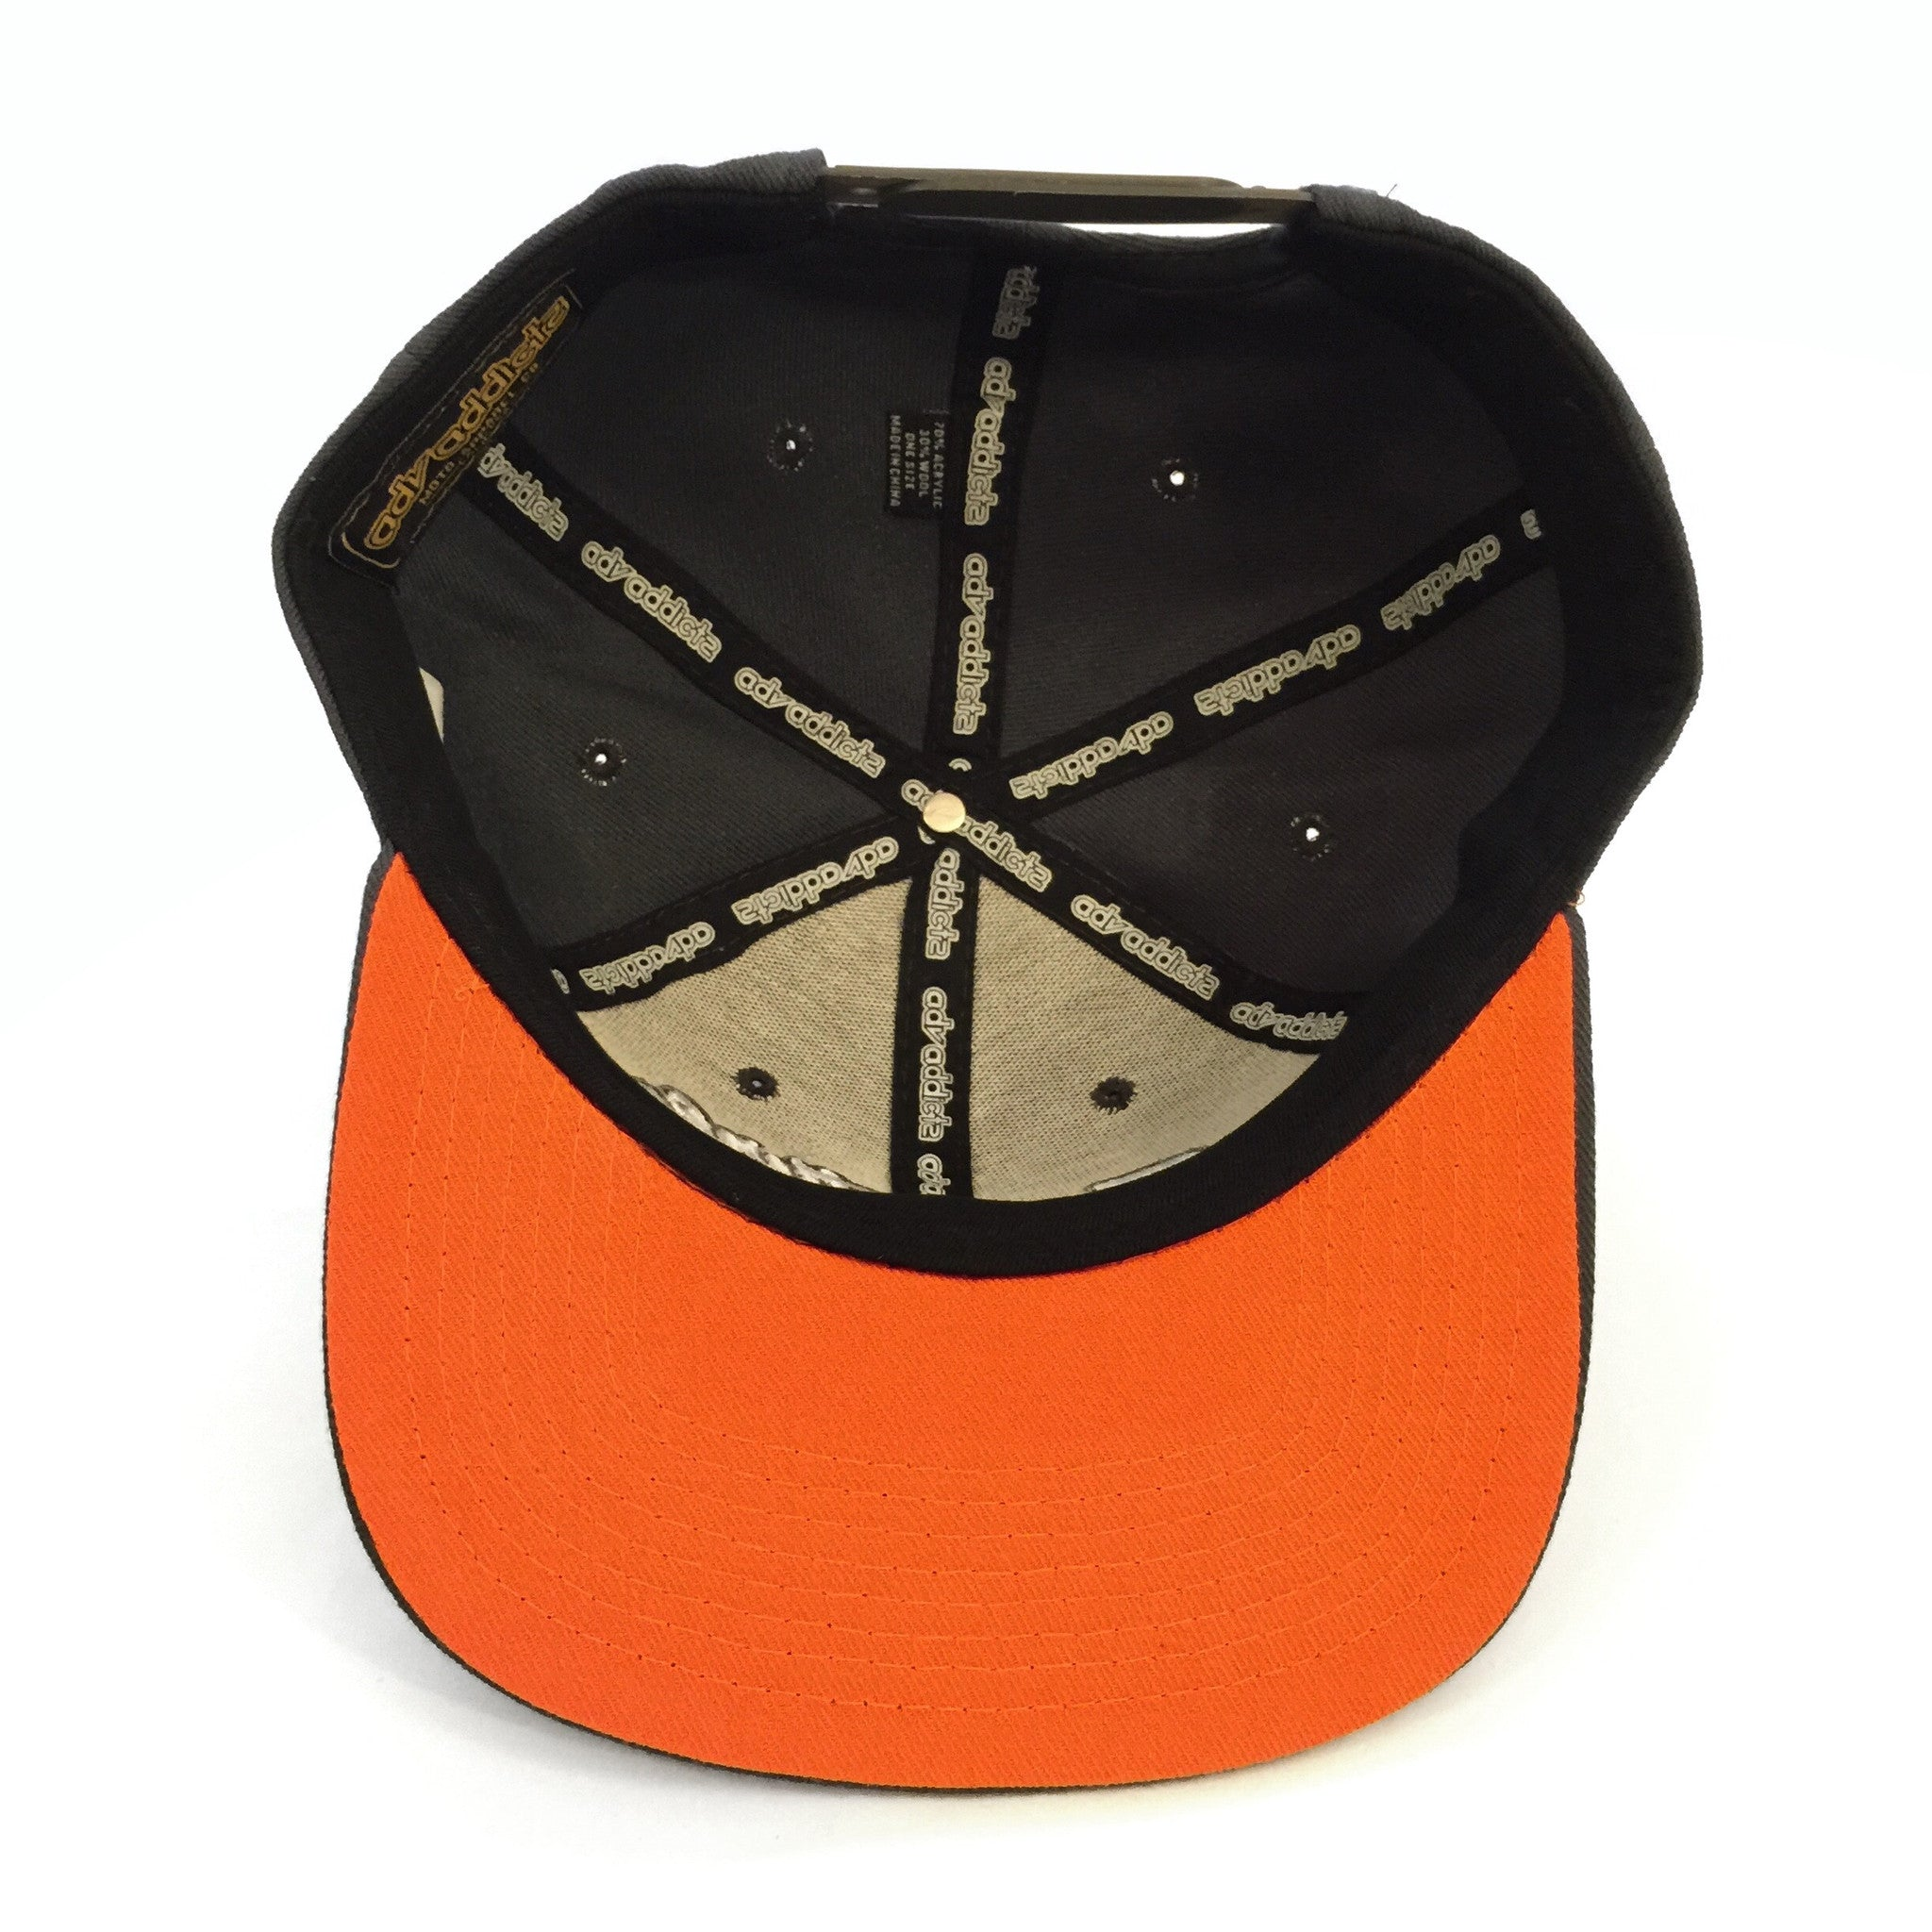 RAMBLE SNAP BACK - Charcoal / Orange